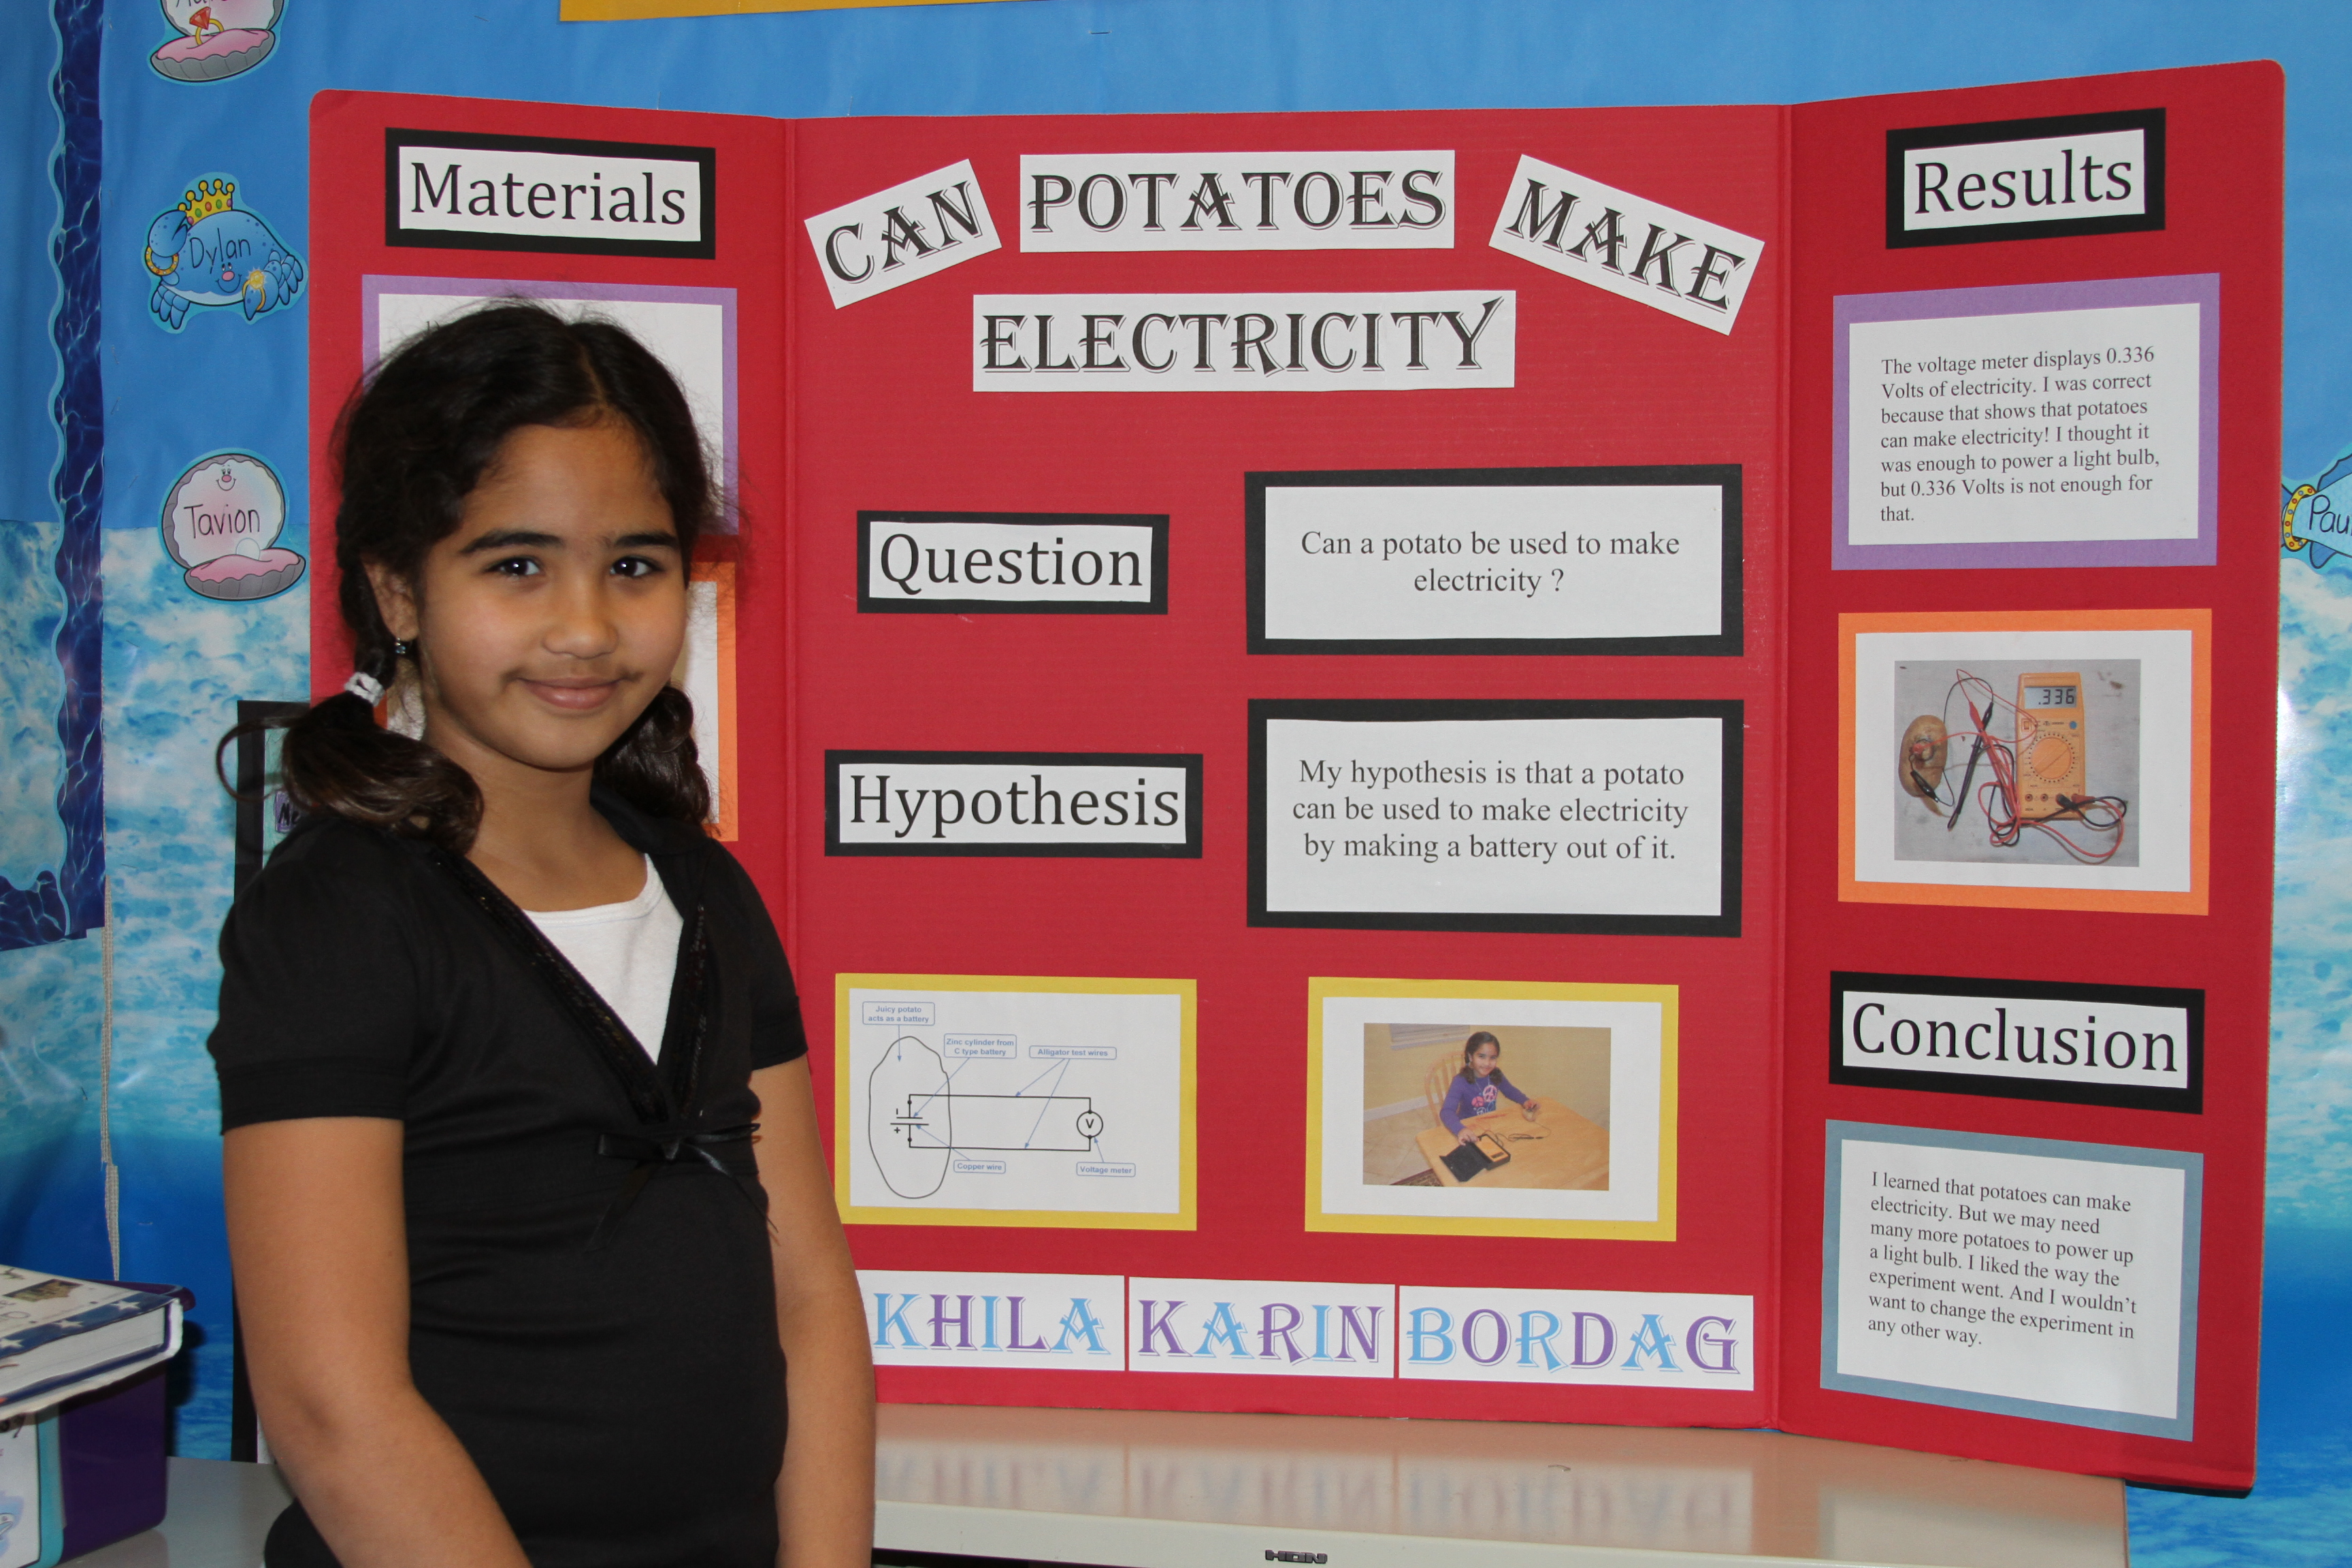 science buddies projects Free topic selection wizard, science fair project ideas, step by step how to do a science fair project, ask an expert discussion board, and science fair tips for success.